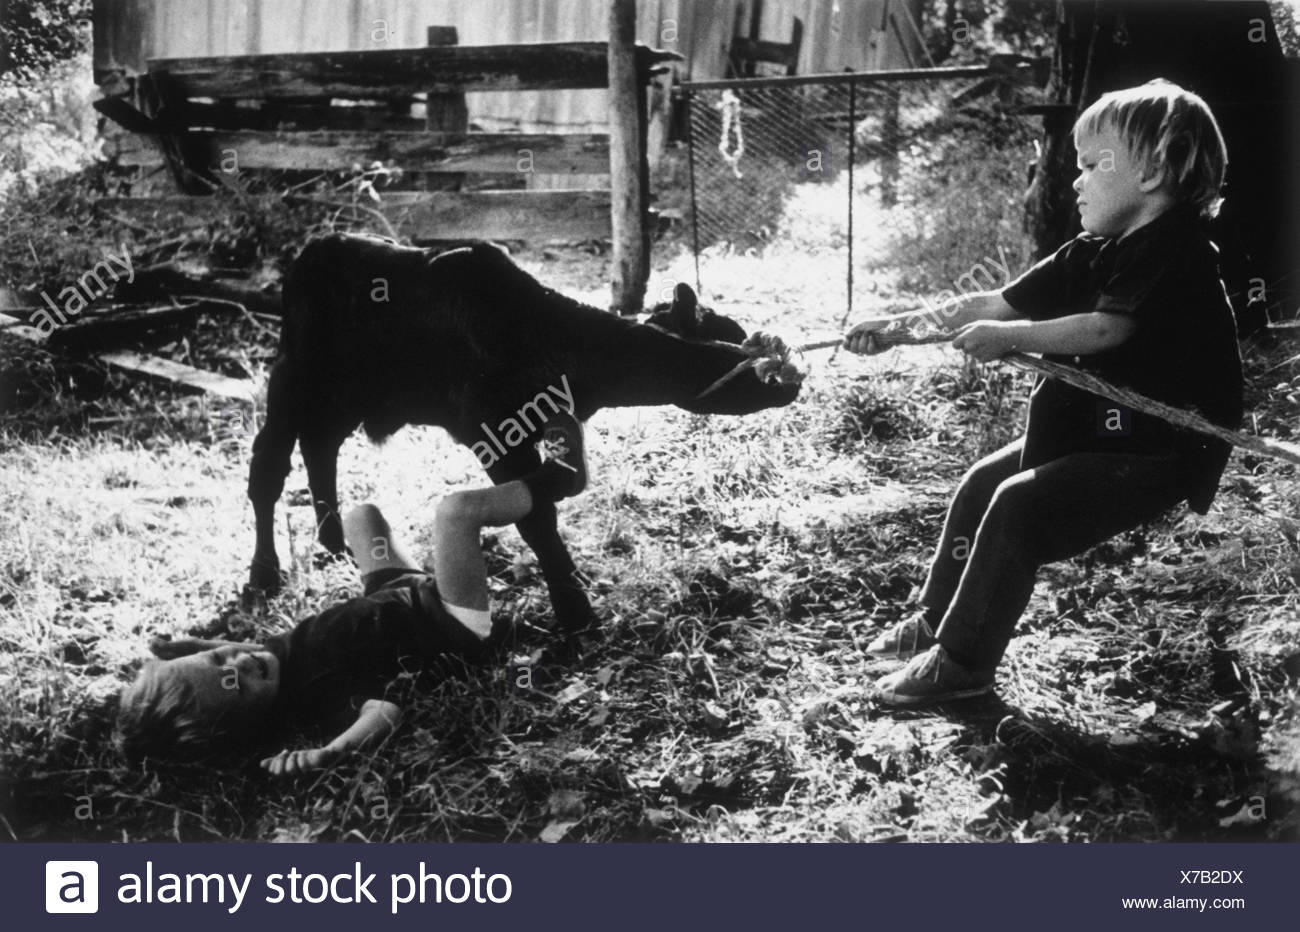 Young boy trying to pull a calf with a rope tied around its neck - Stock Image